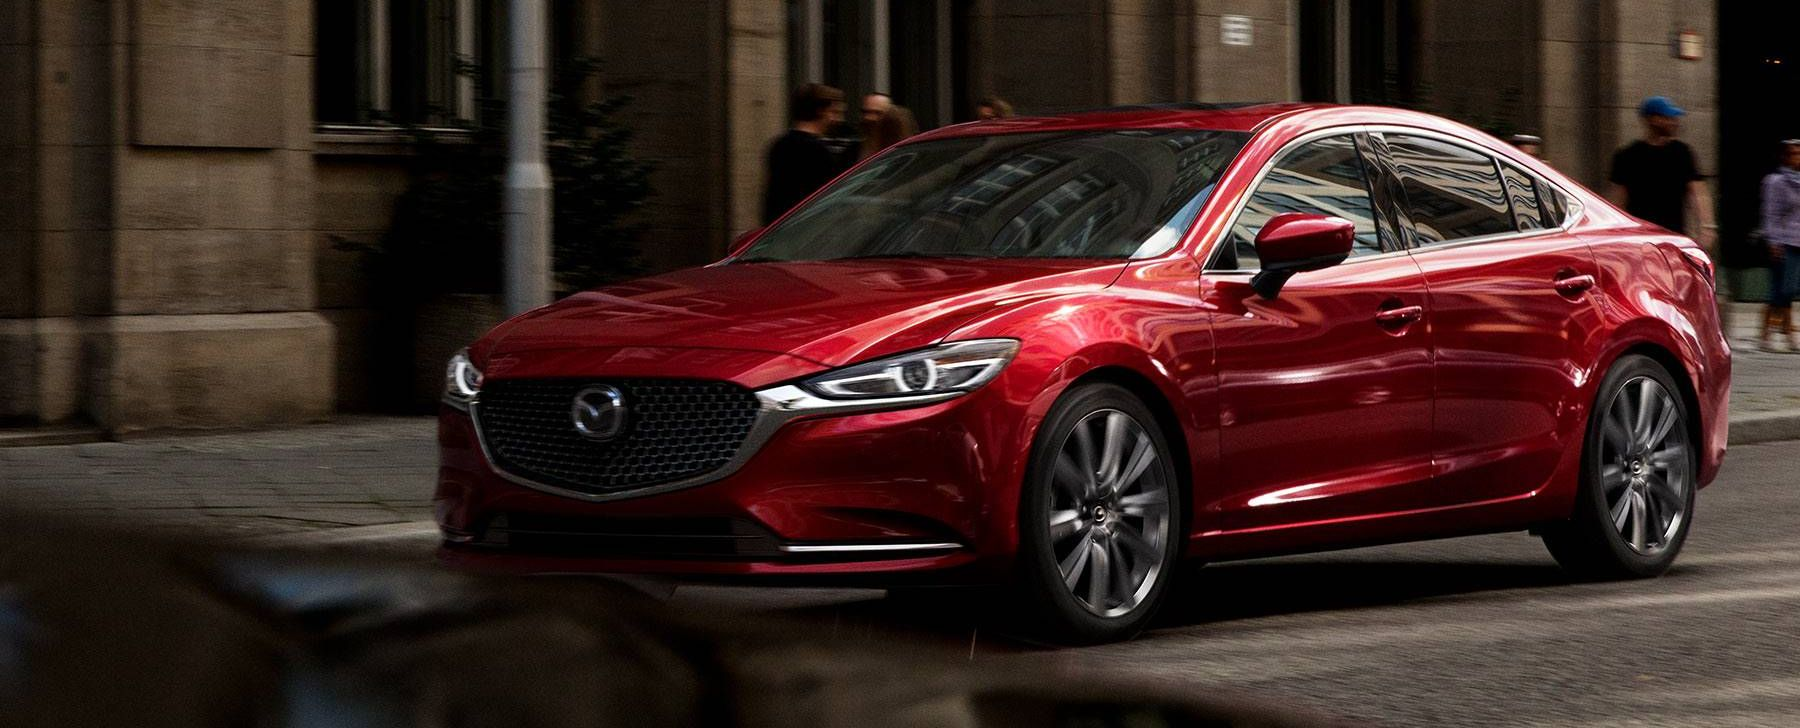 2018 mazda6 for sale near friendswood tx mazda of clear lake. Black Bedroom Furniture Sets. Home Design Ideas